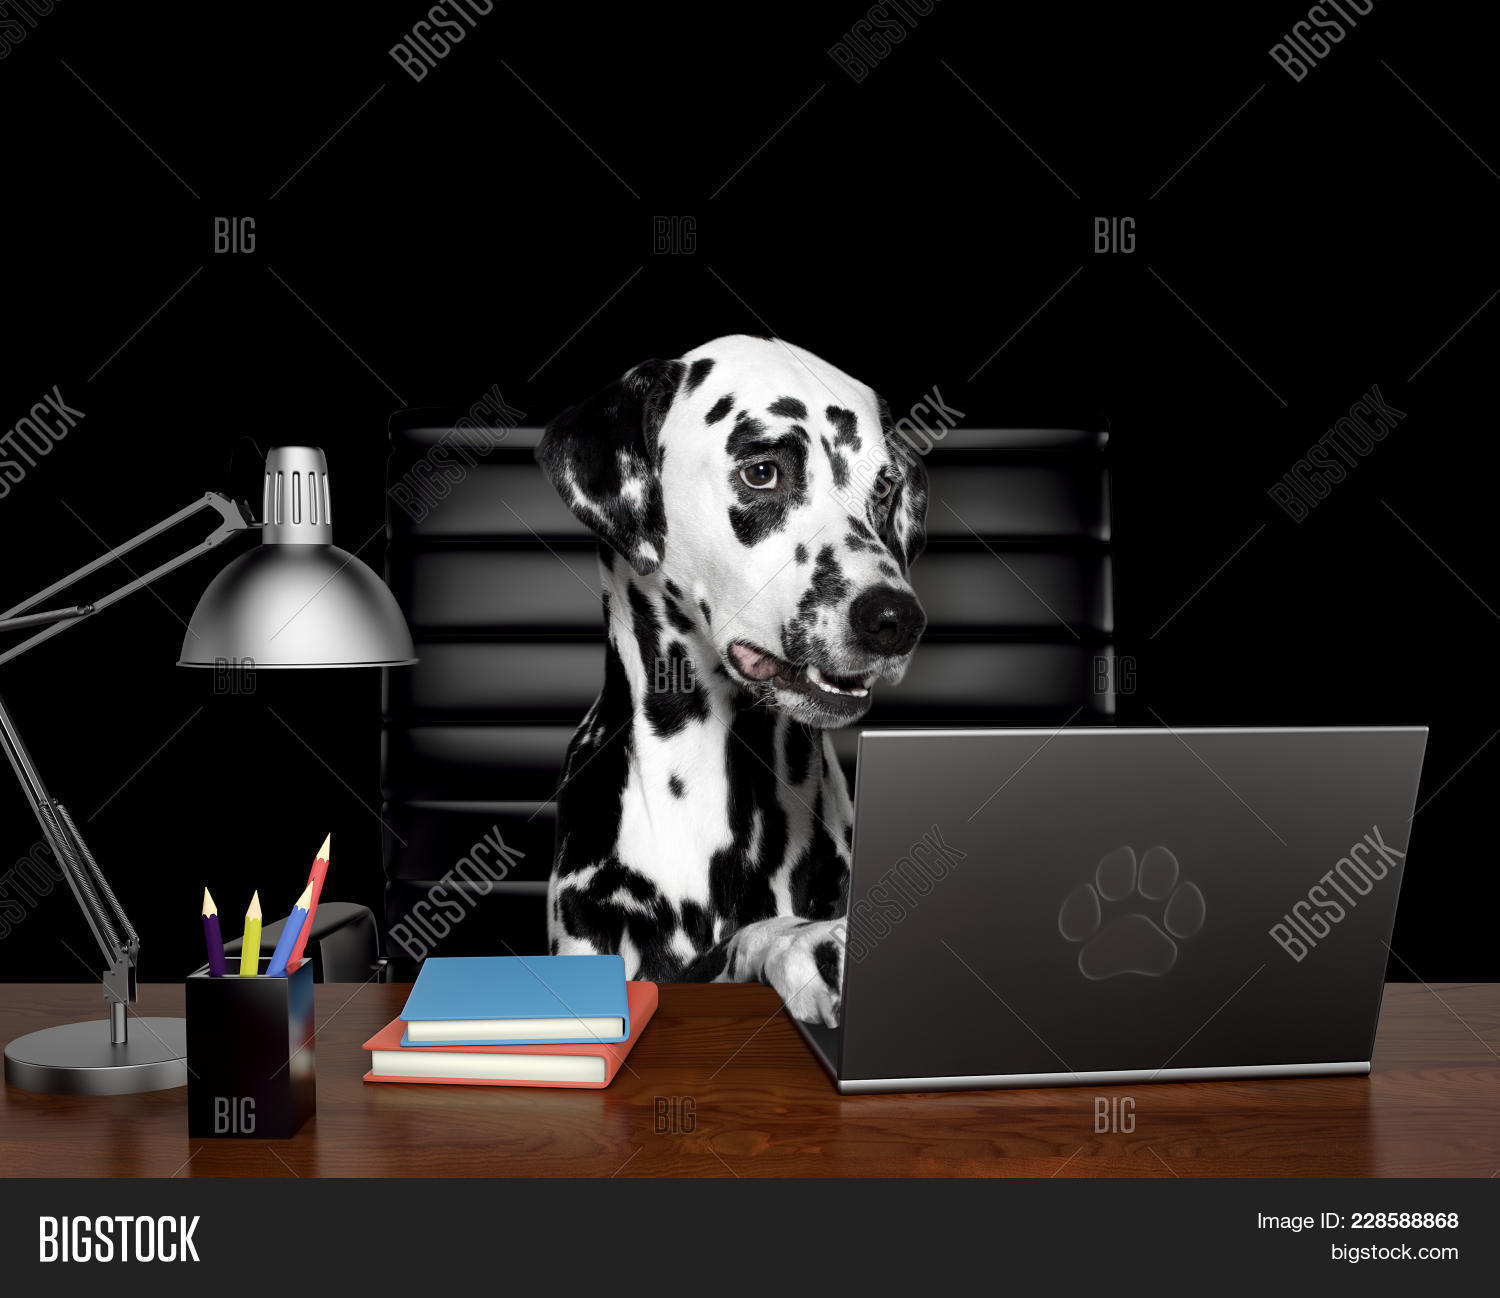 Dalmatian Dog Powerpoint Template Dalmatian Dog Powerpoint Background